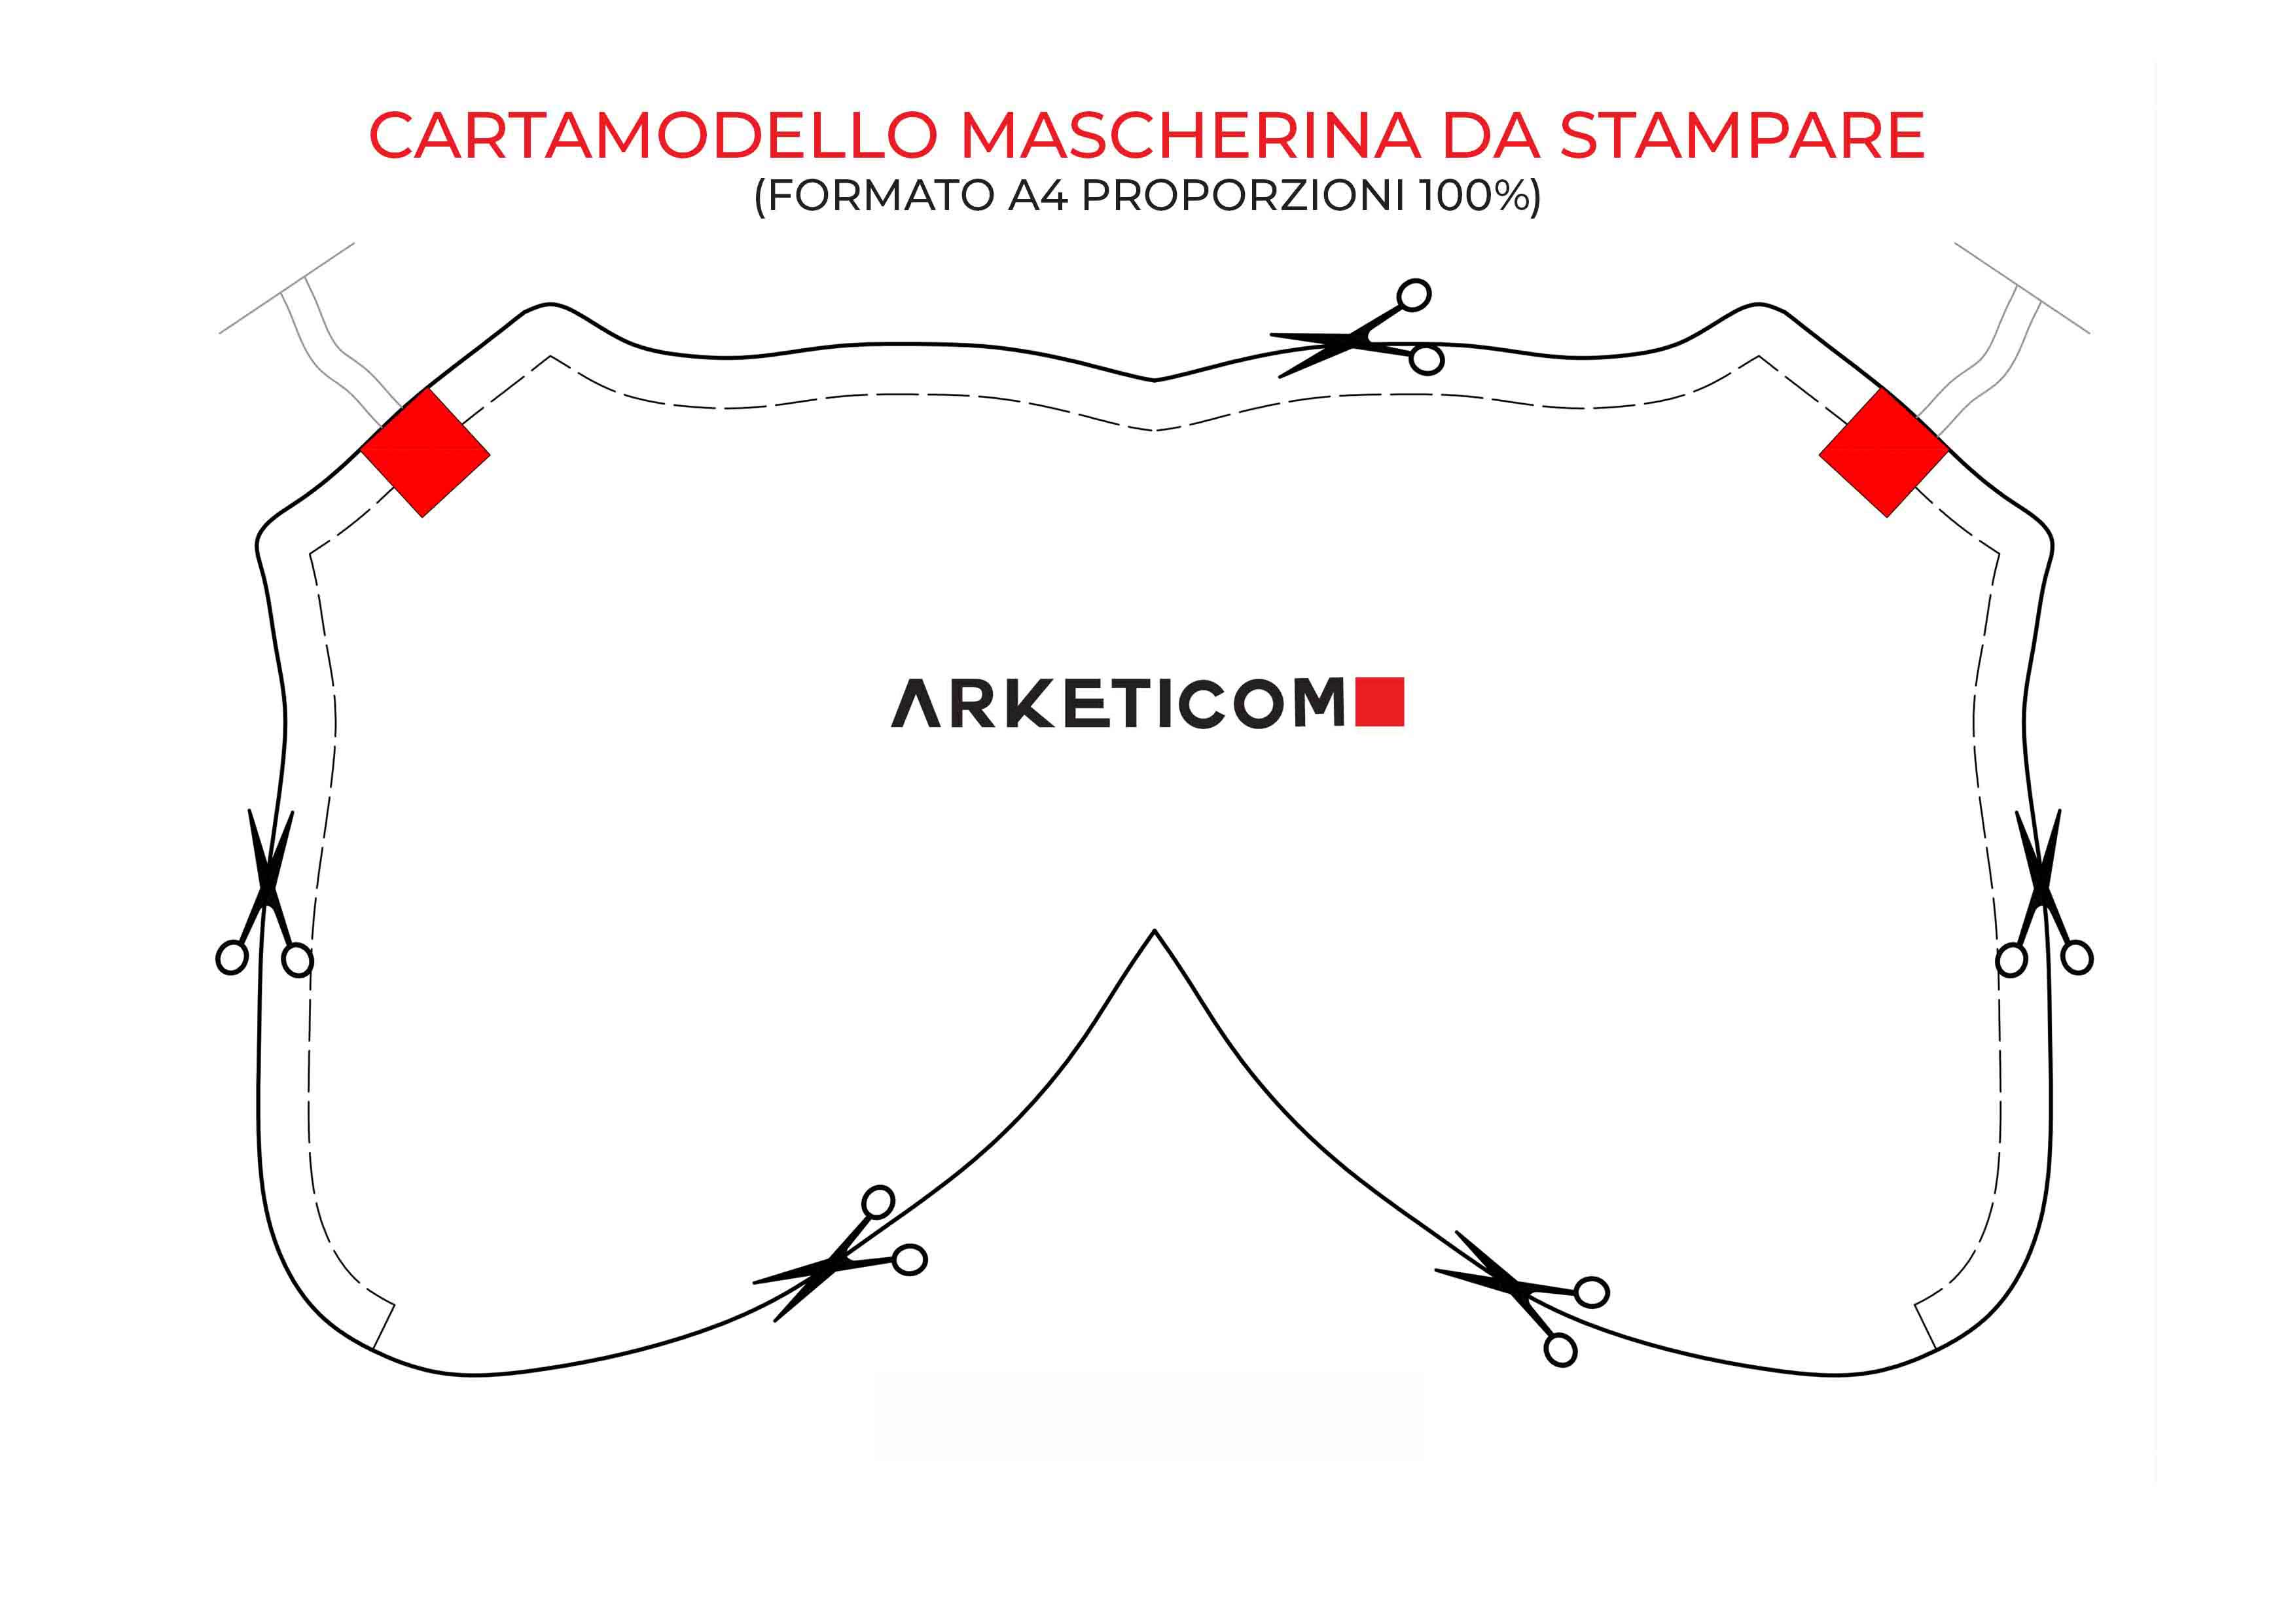 Arketicom Cartamodello mascherina da stampare